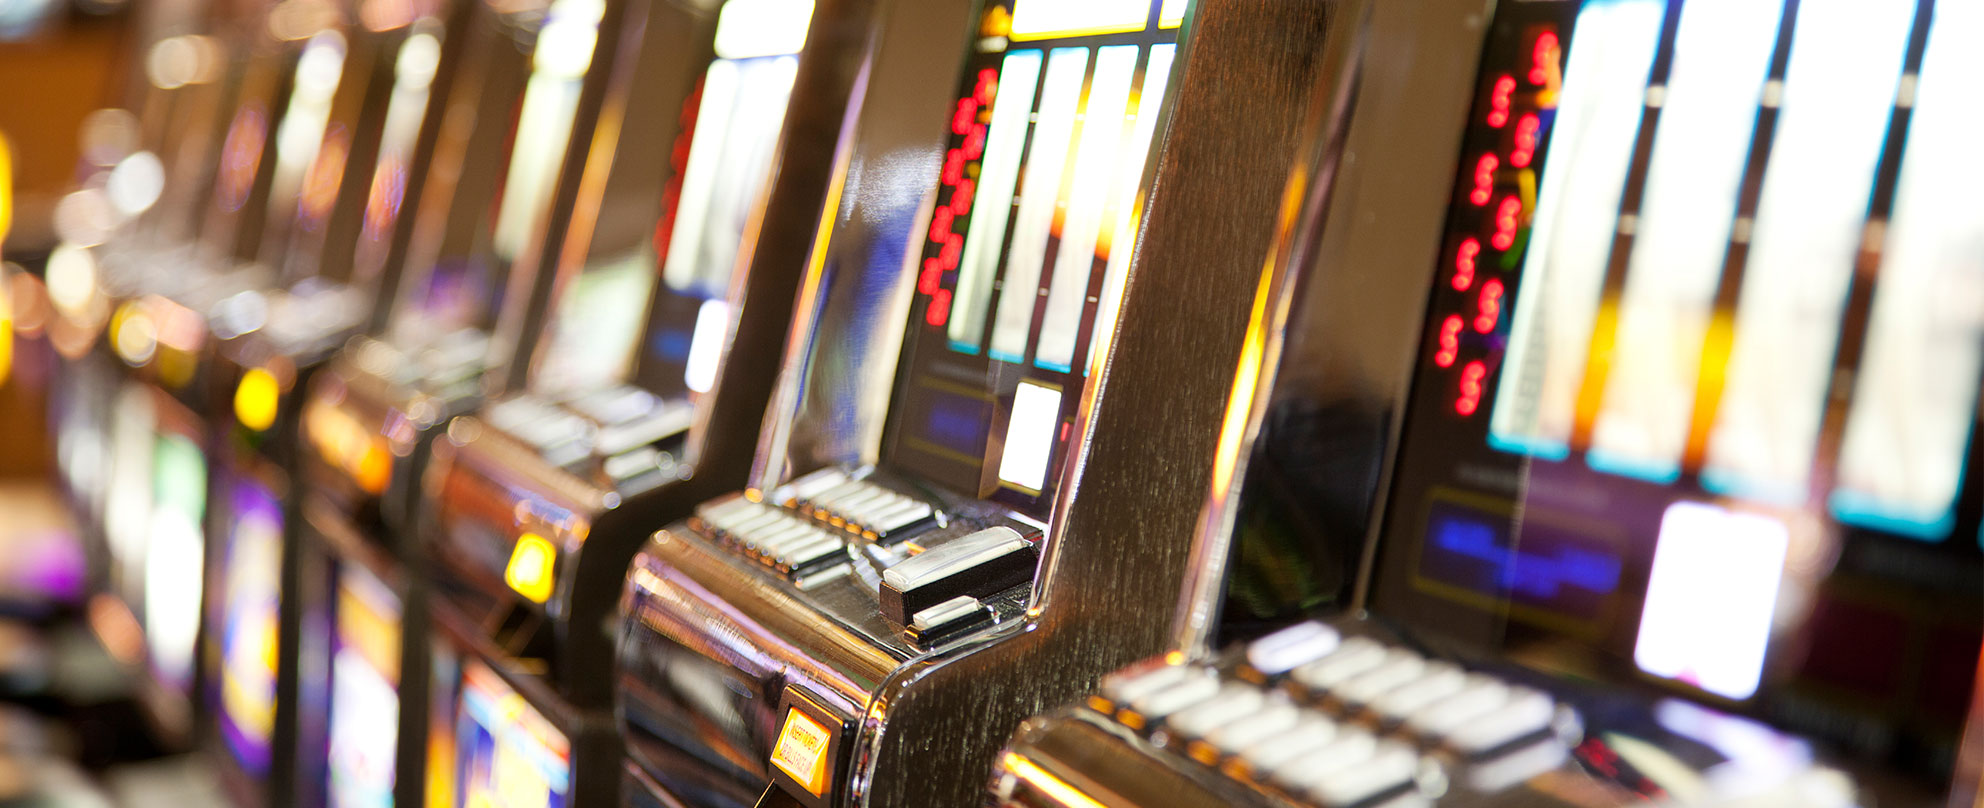 Blurred photo of a row of poker machines